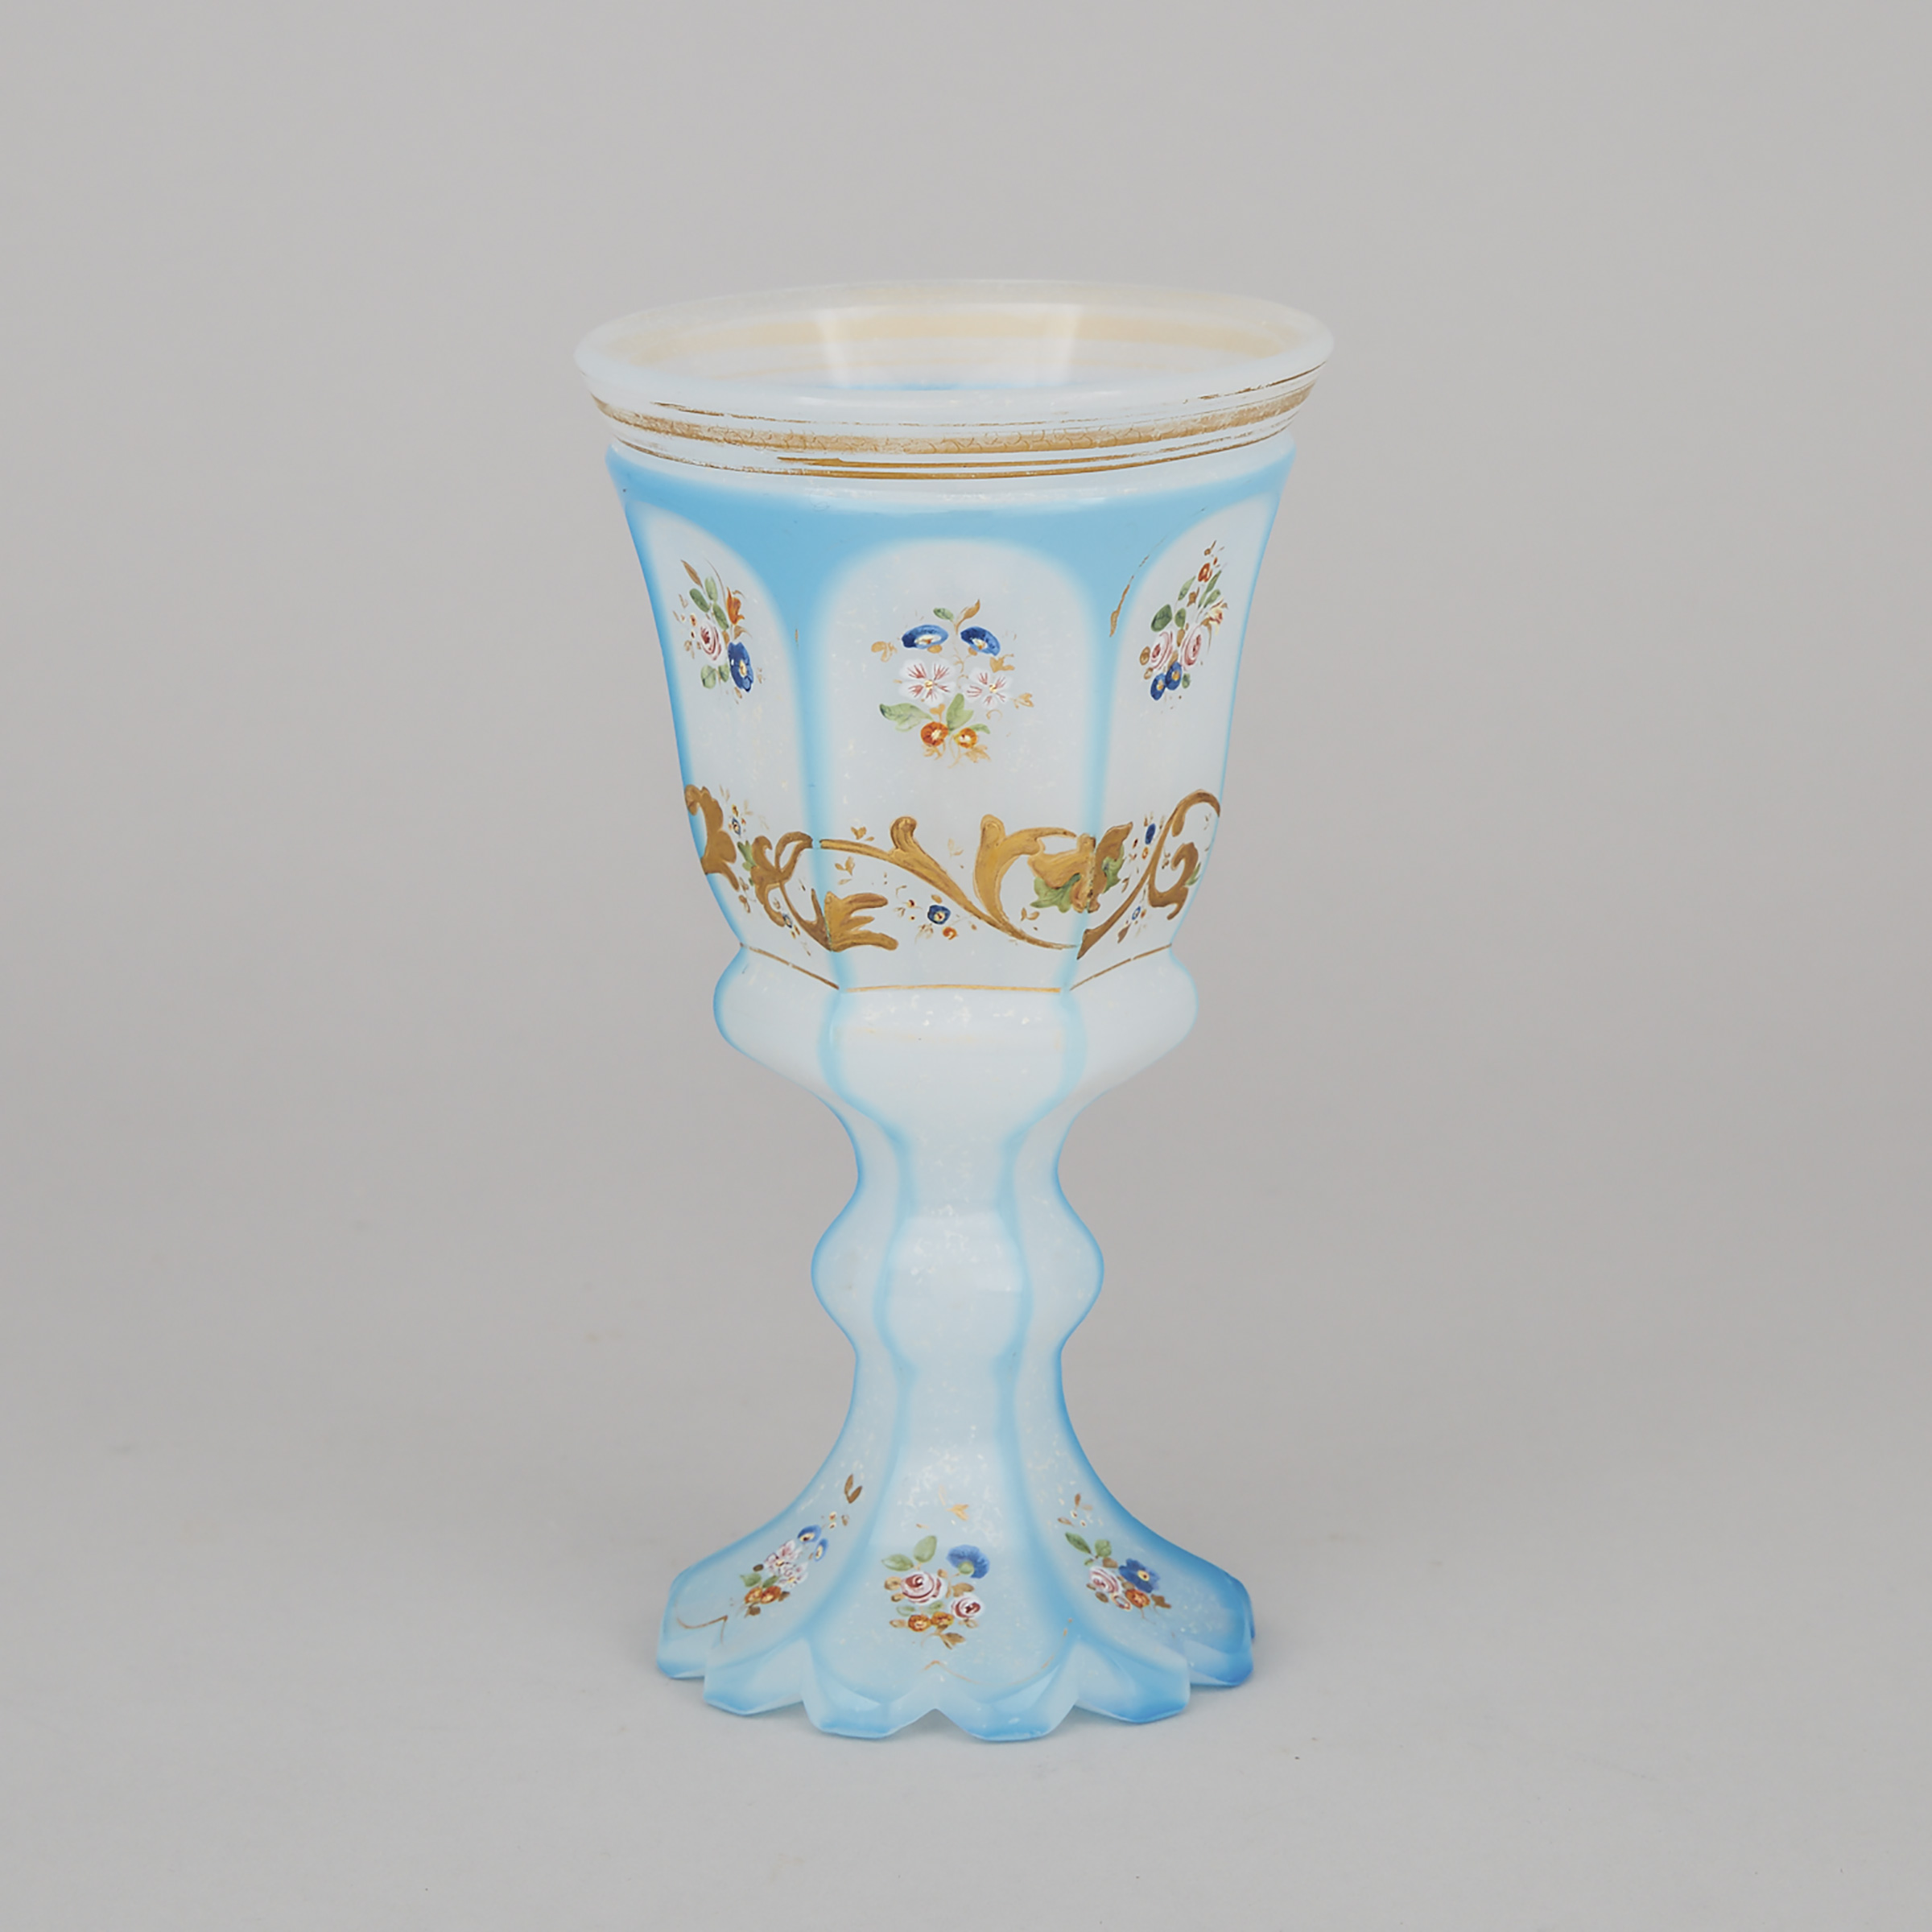 Bohemian Blue Overlaid, Cut, Enameled and Gilt Opaline Glass Goblet, mid-19th century